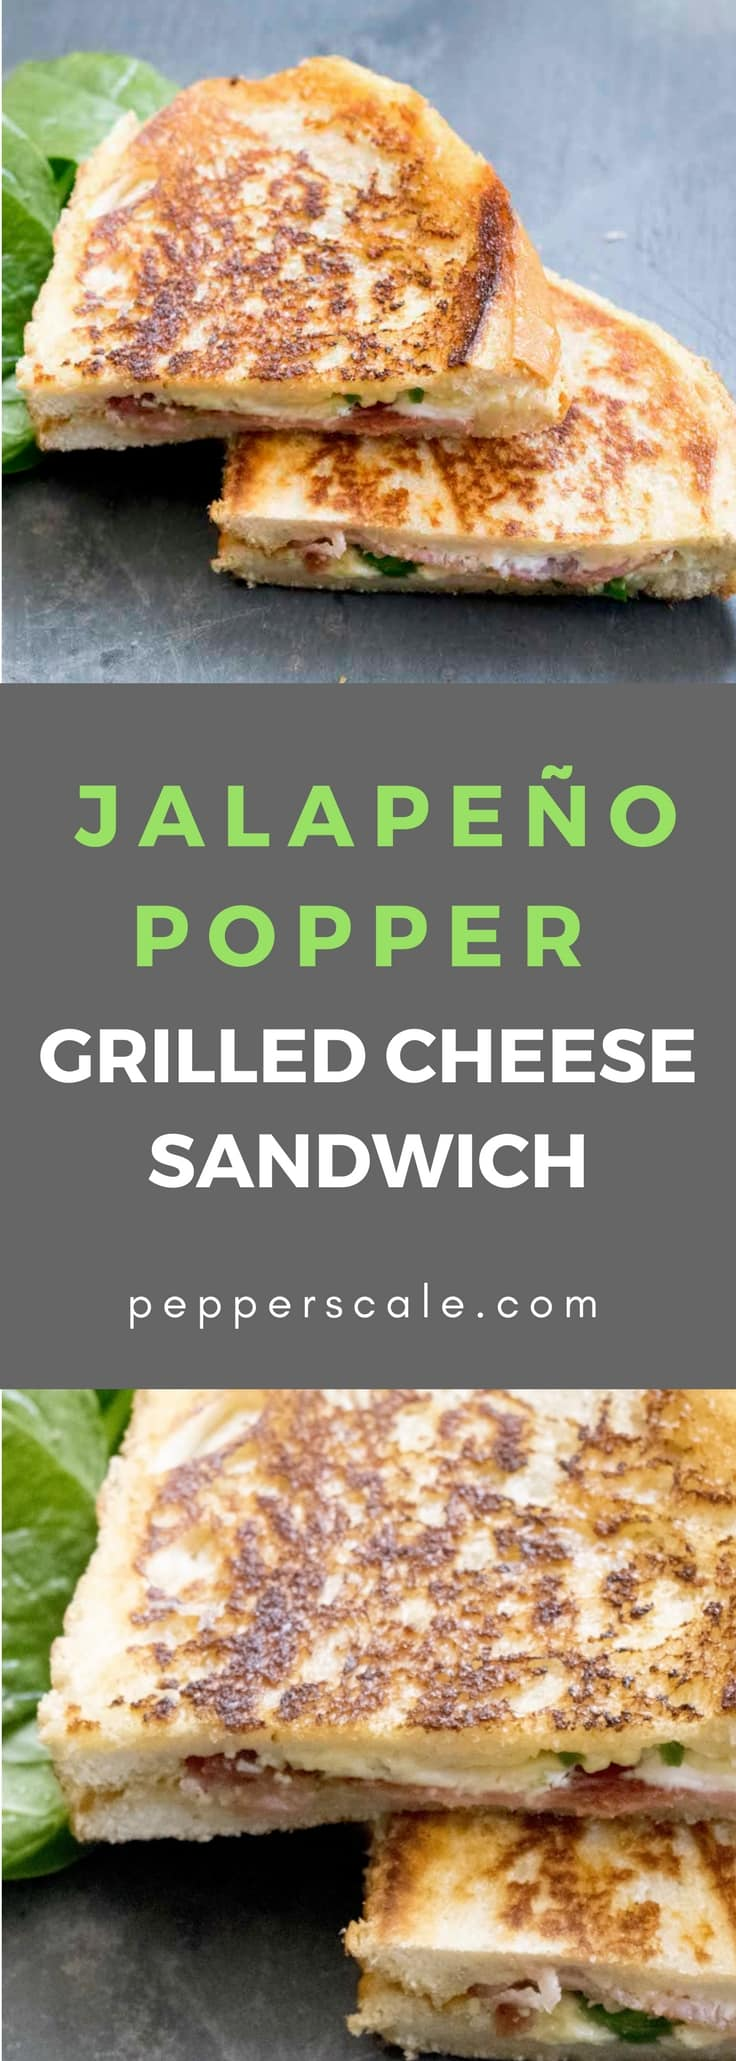 Once you've tasted a jalapeno popper grilled cheese sandwich, it's hard to return to plain-Jane cheddar on bread. This #recipe is souped up comfort food.